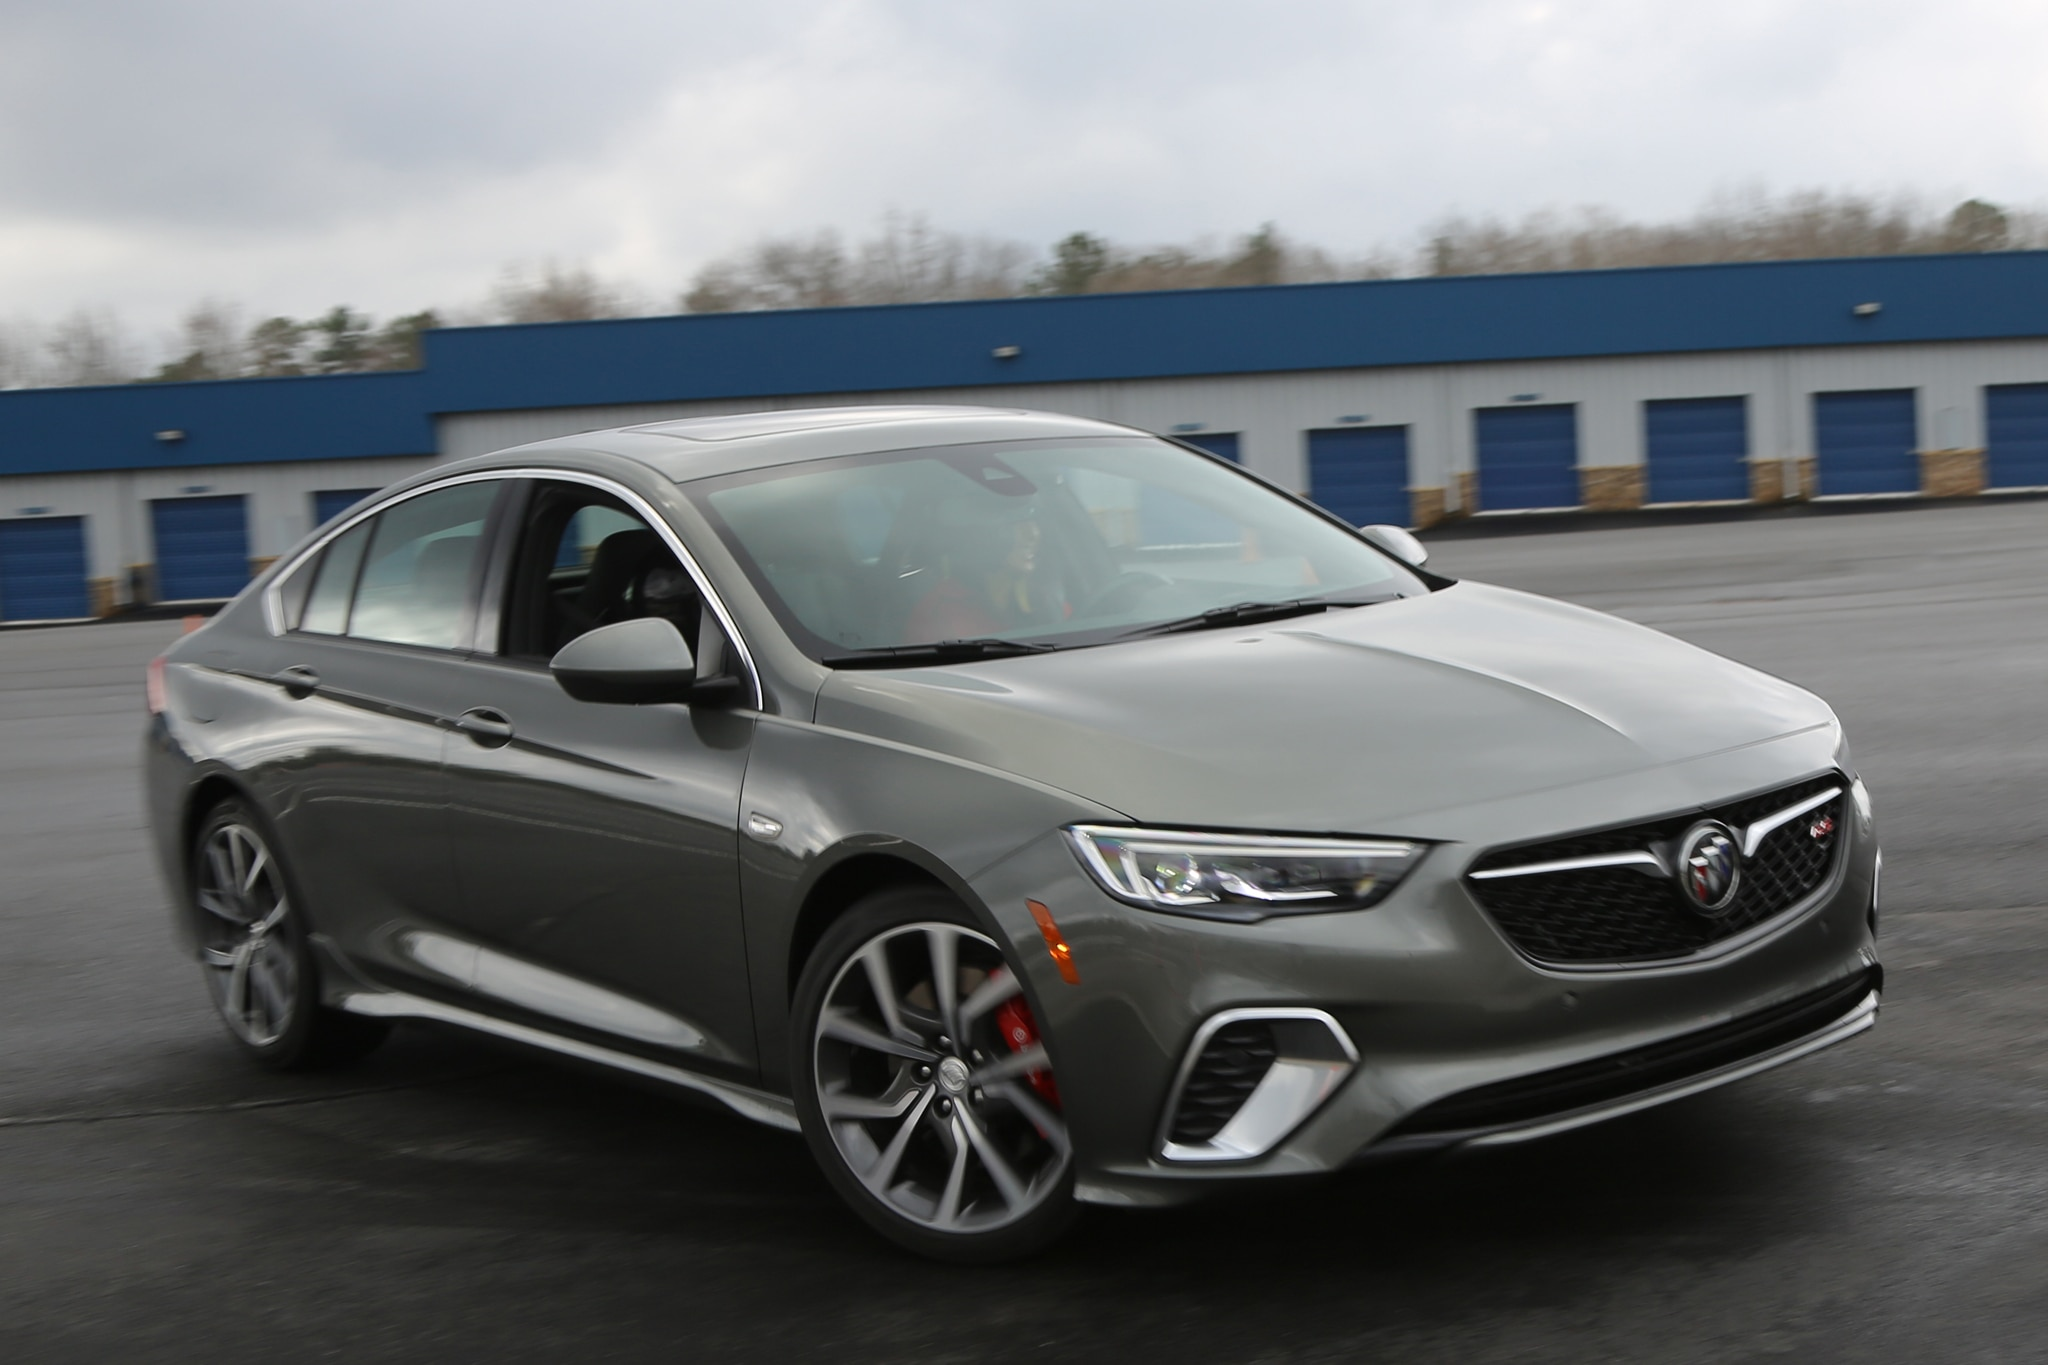 First Drive: 2018 Buick Regal GS